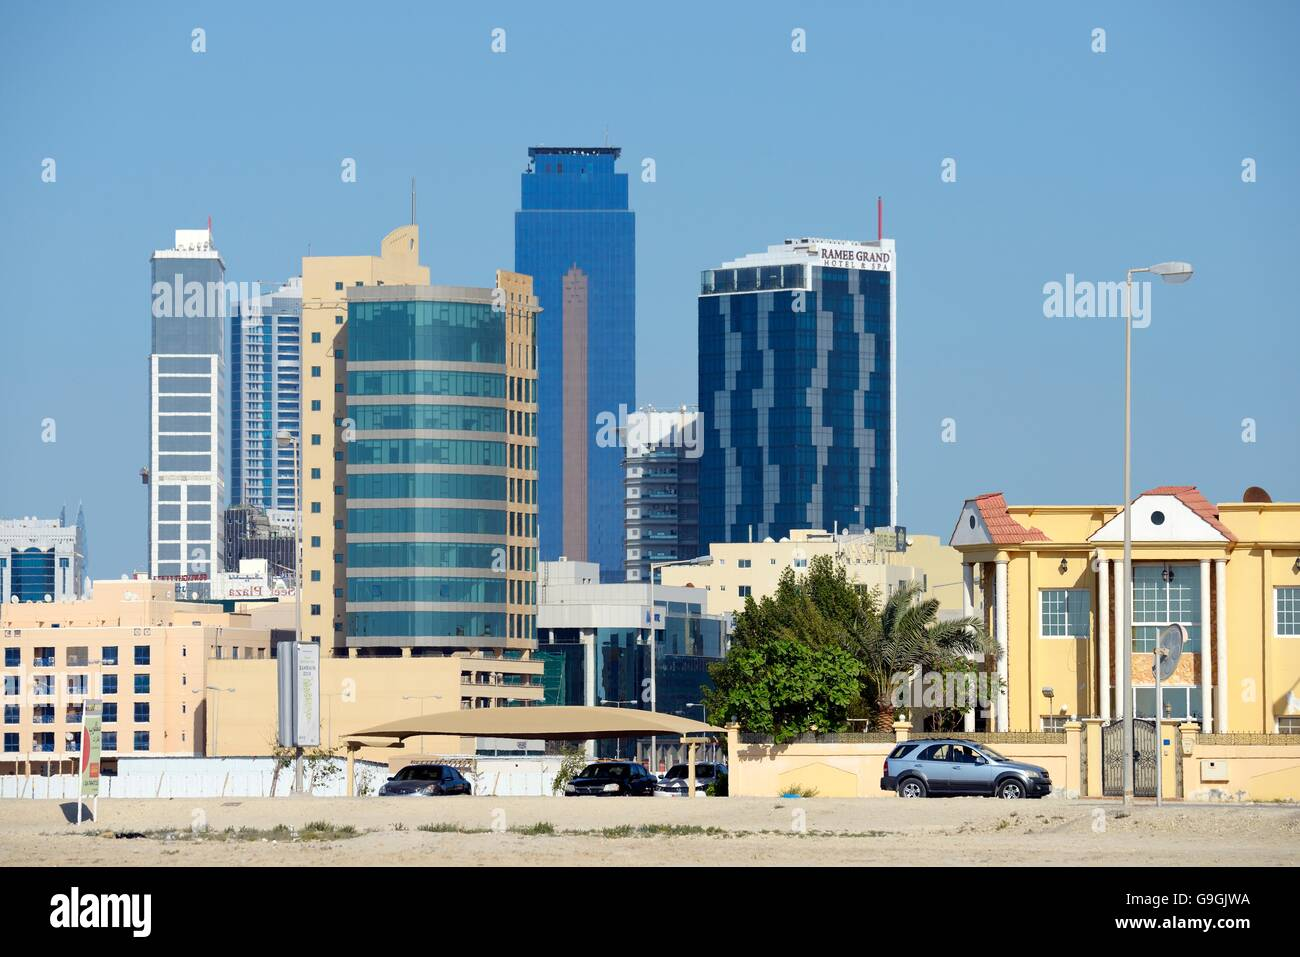 Manama, Bahrain. Seef district. Looking east to the Ramee Grand Hotel and the Almoayyed Tower aka the Dark Tower - Stock Image